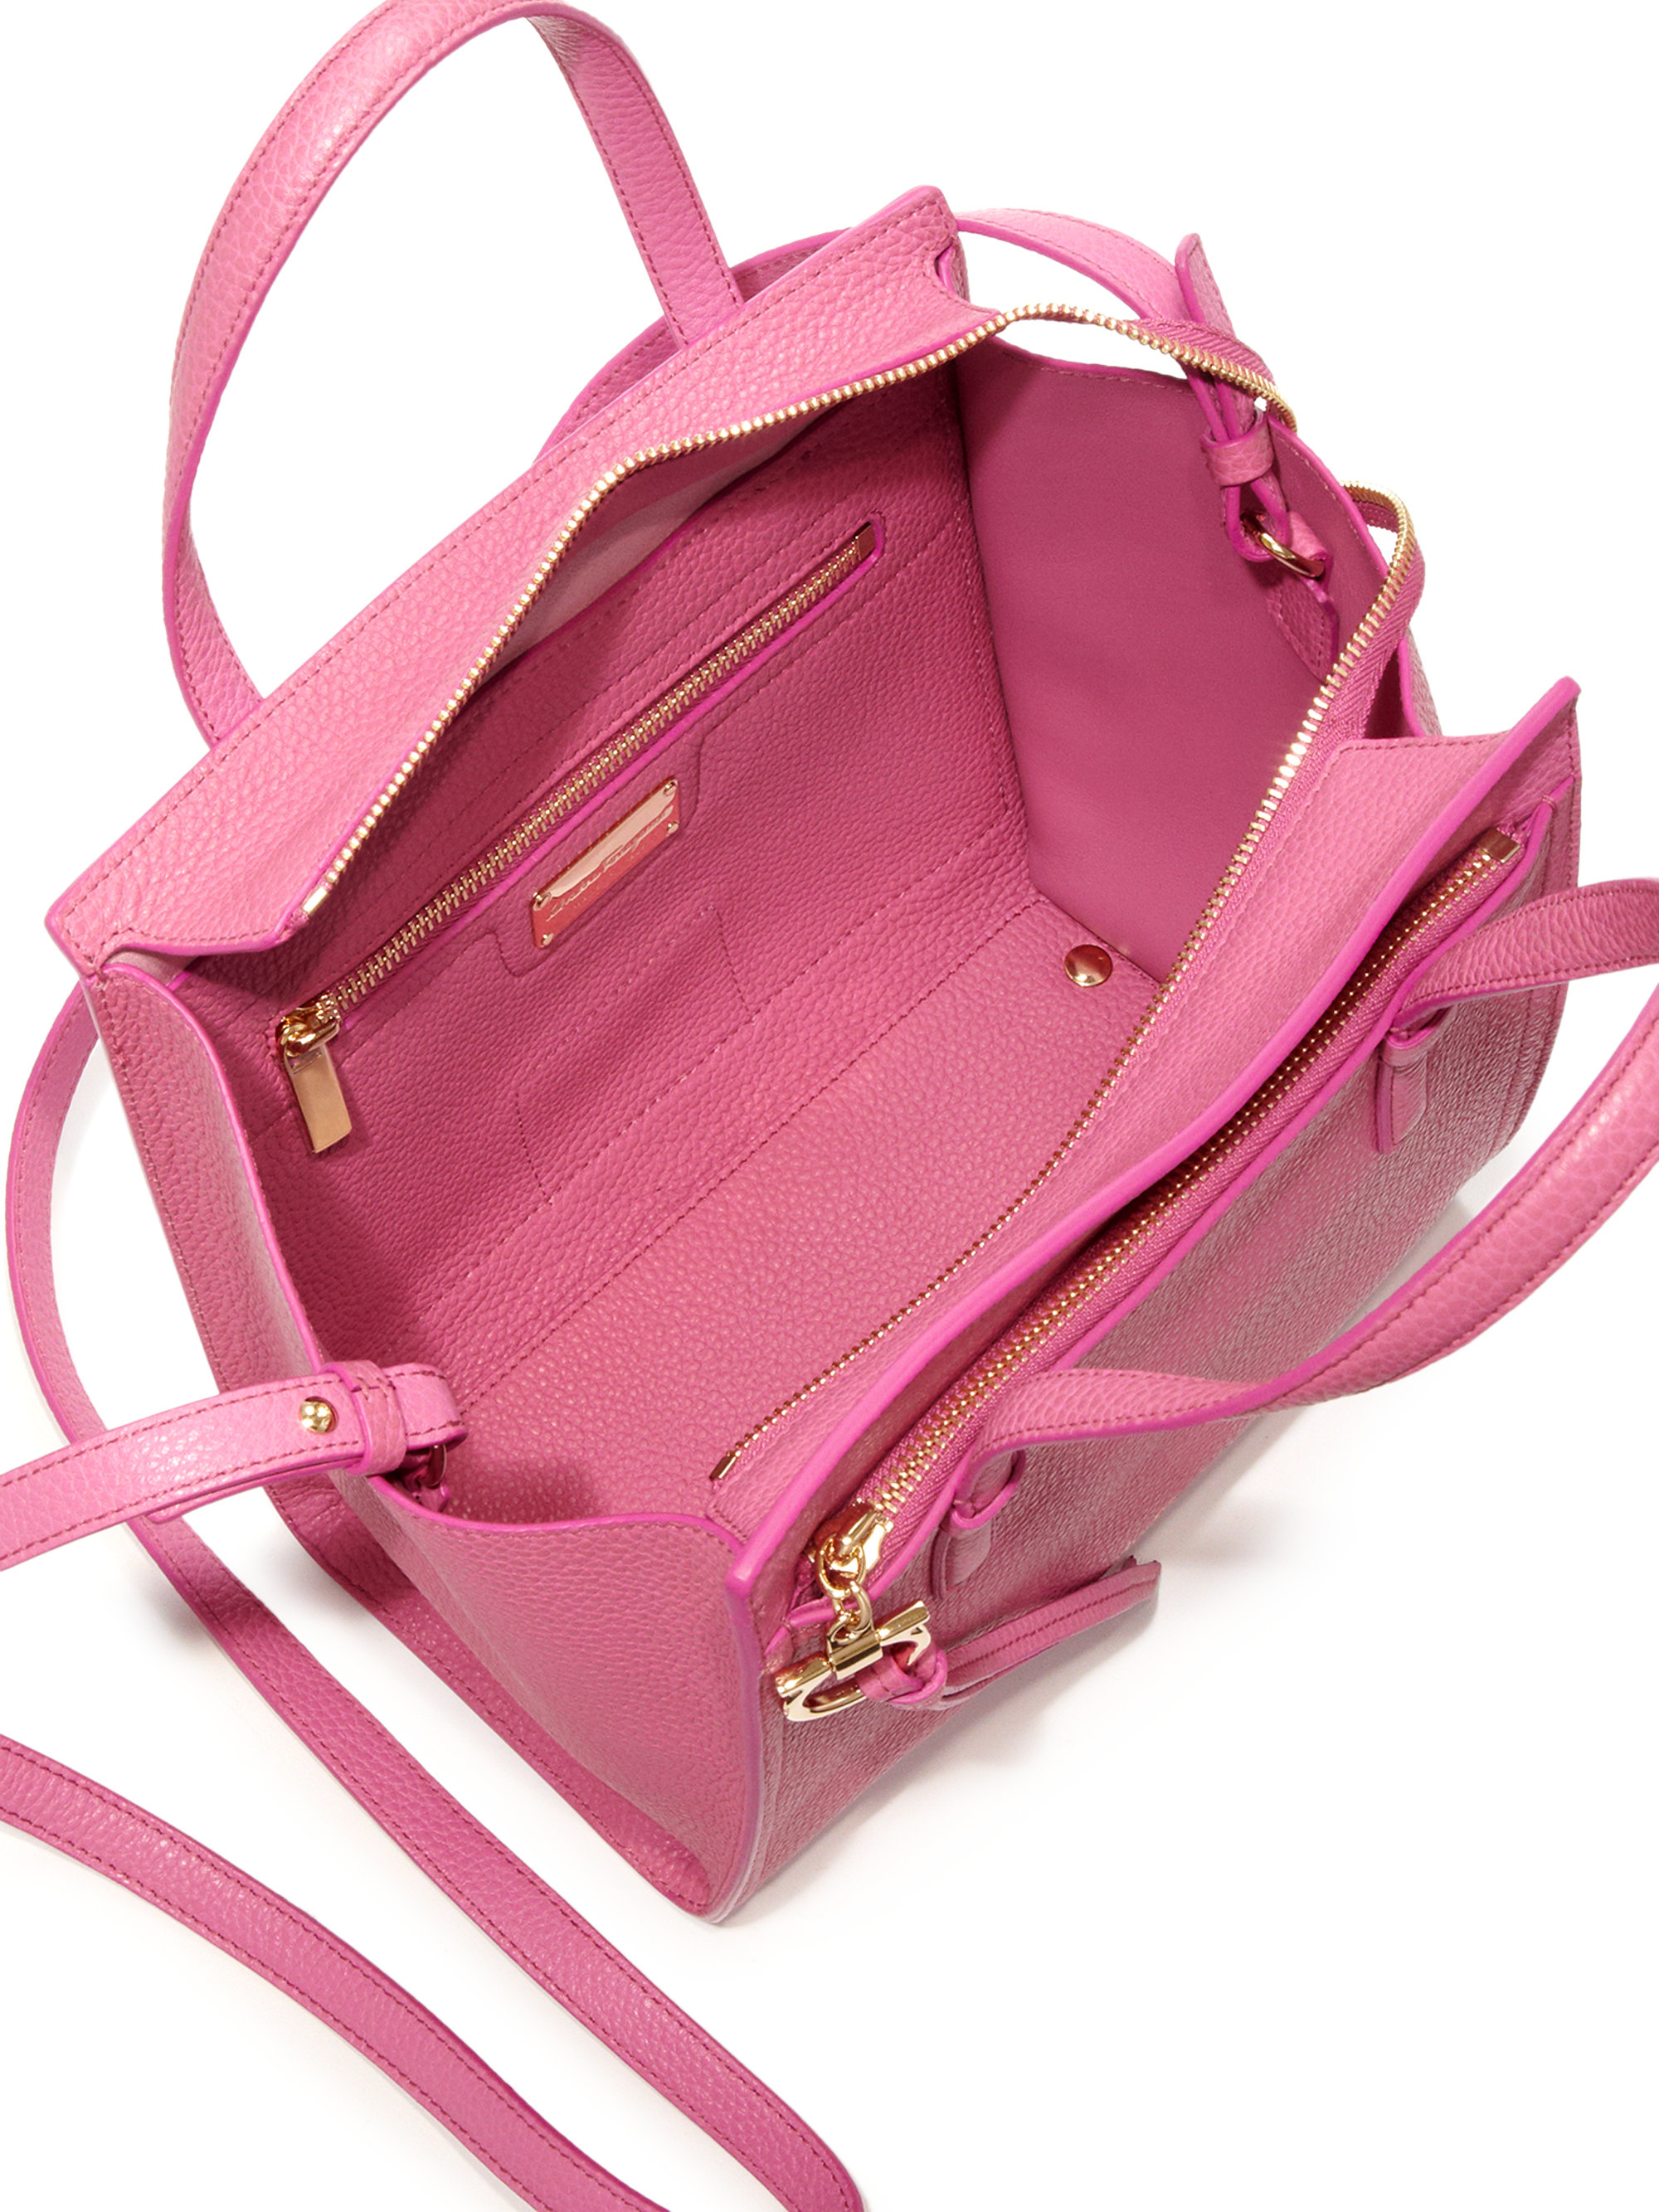 643815c30ab7 Lyst - Ferragamo Amy Small Leather Tote in Pink